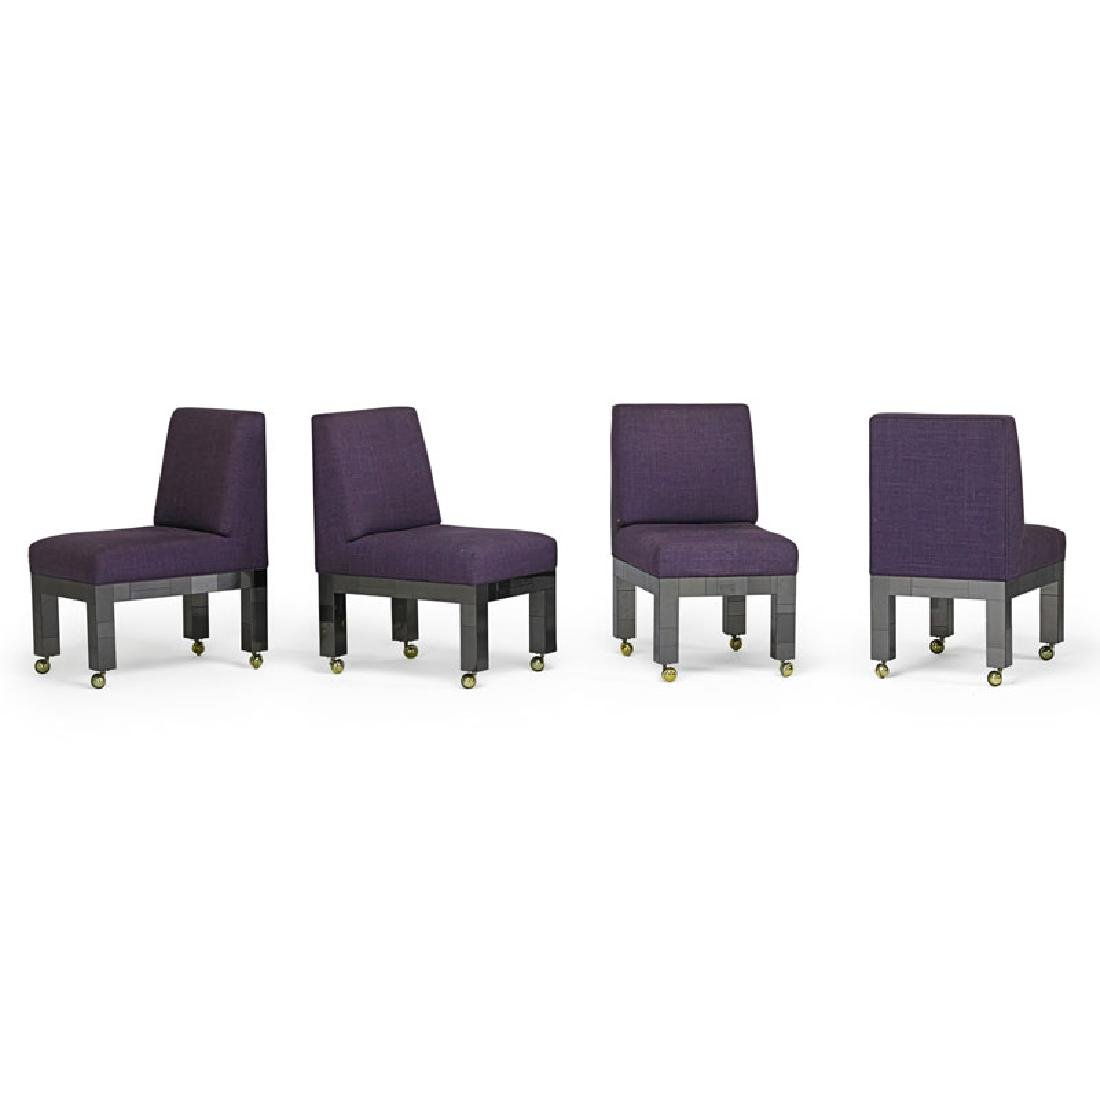 PAUL EVANS Four Cityscape dining chairs